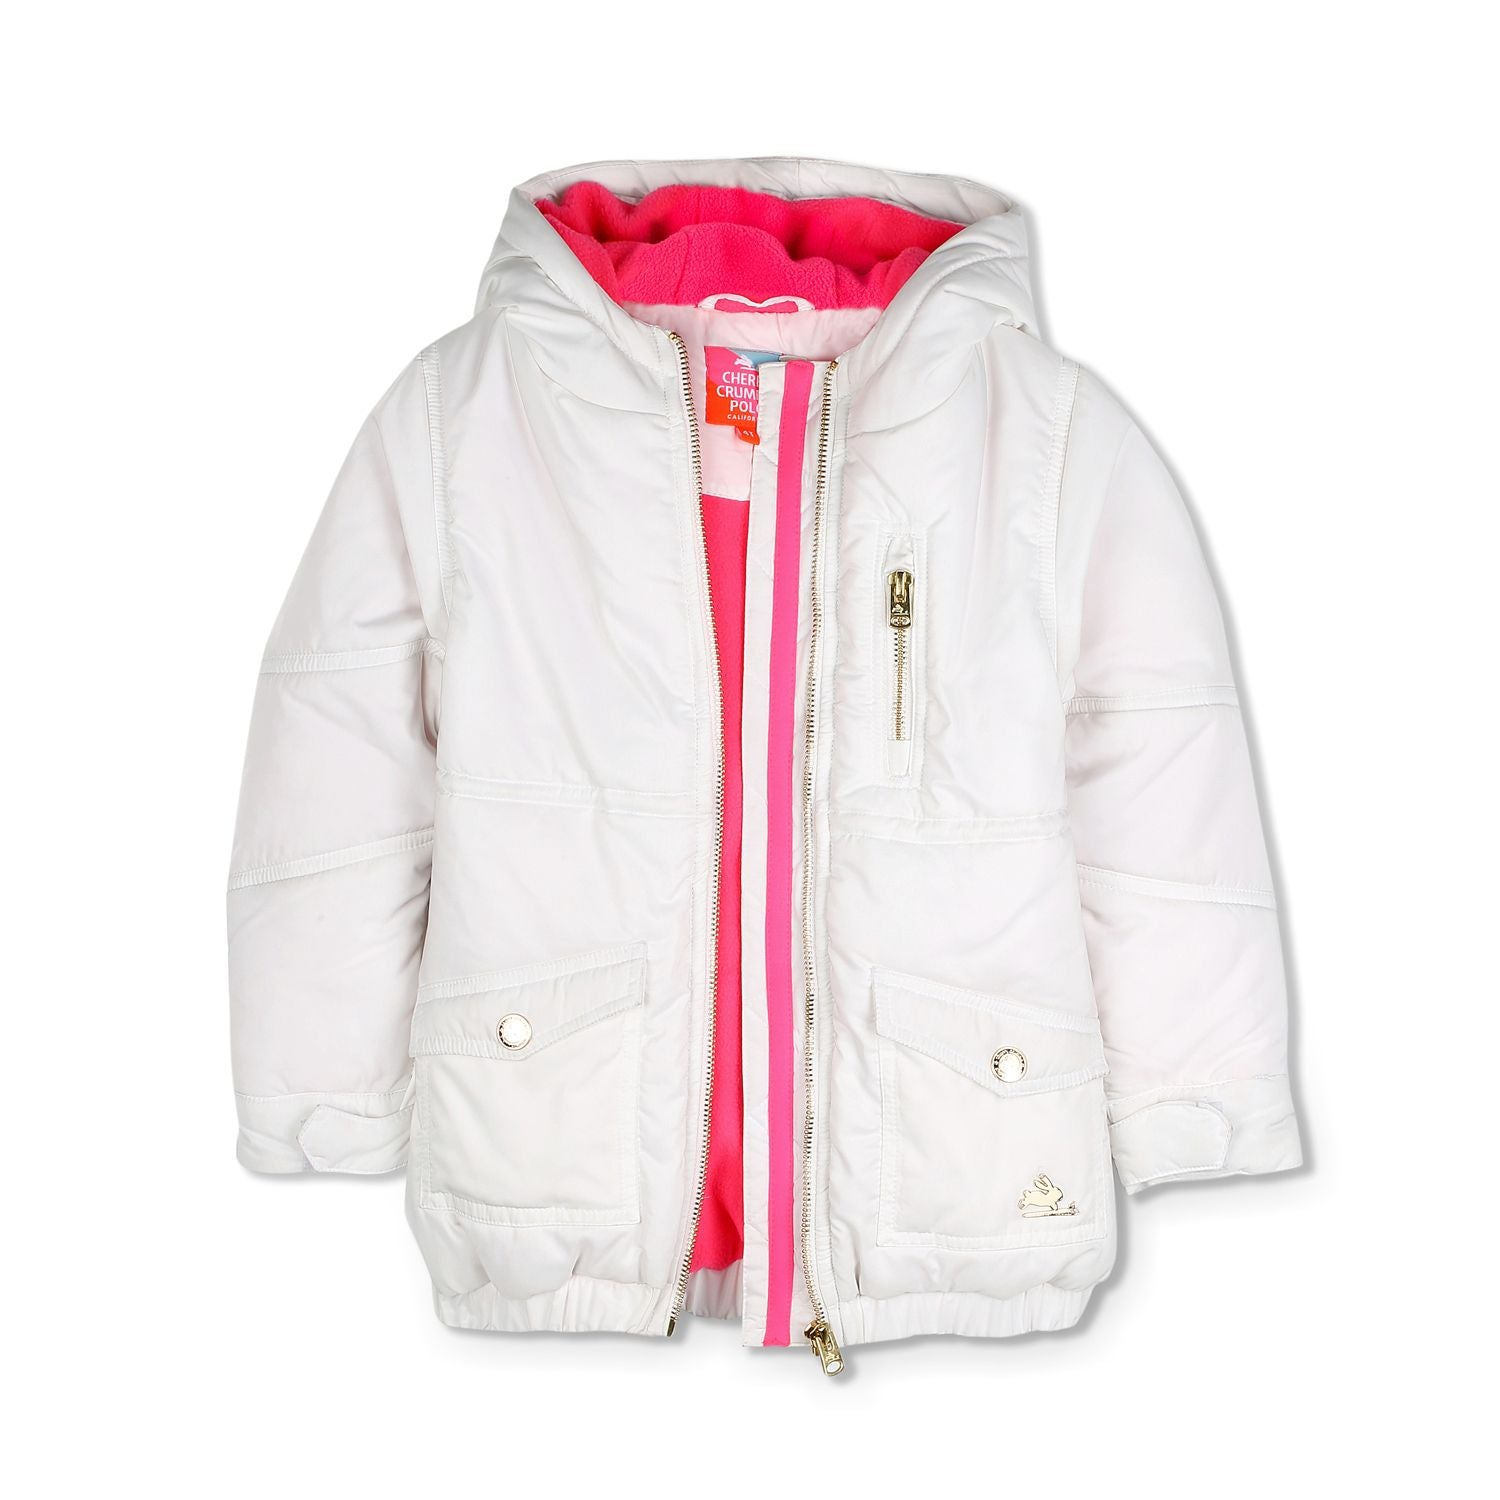 Snow Anorak Jacket for Boys